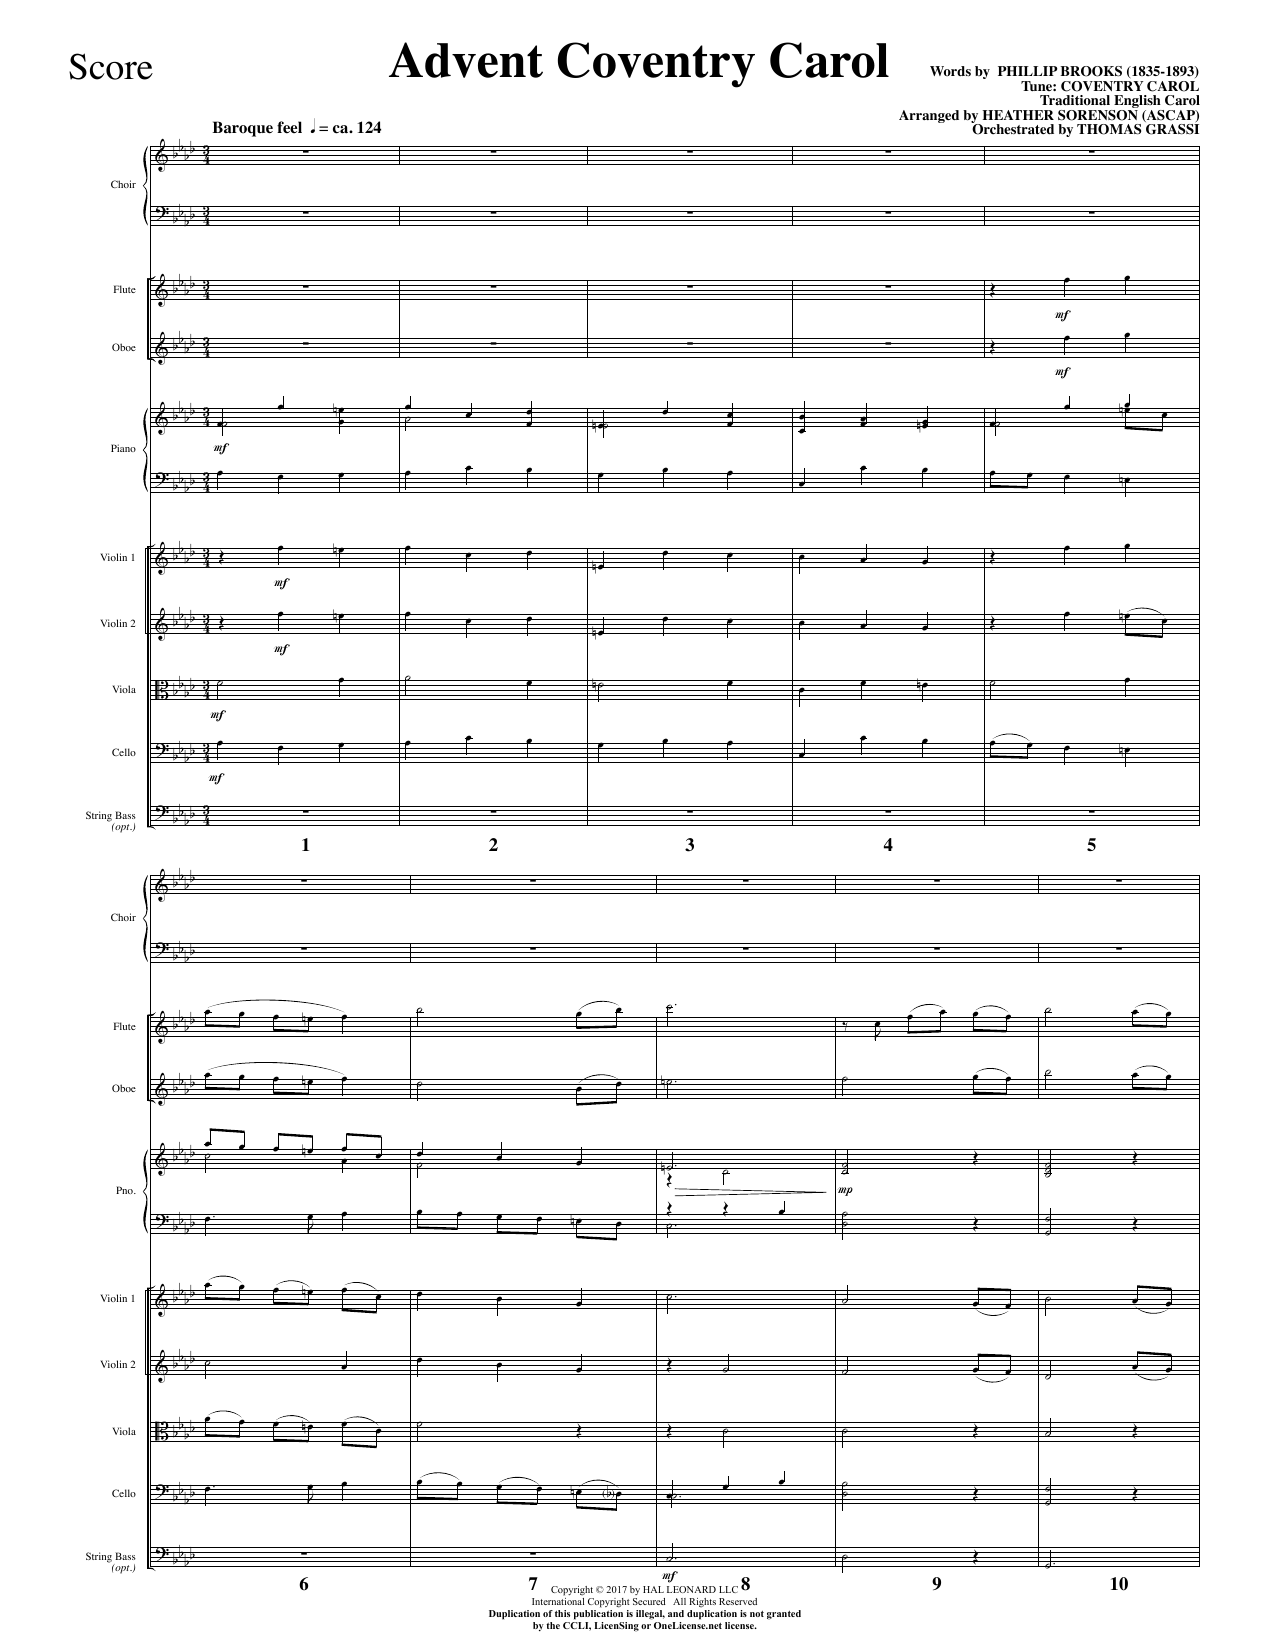 Coventry Carol - Advent Coventry Carol - Full Score